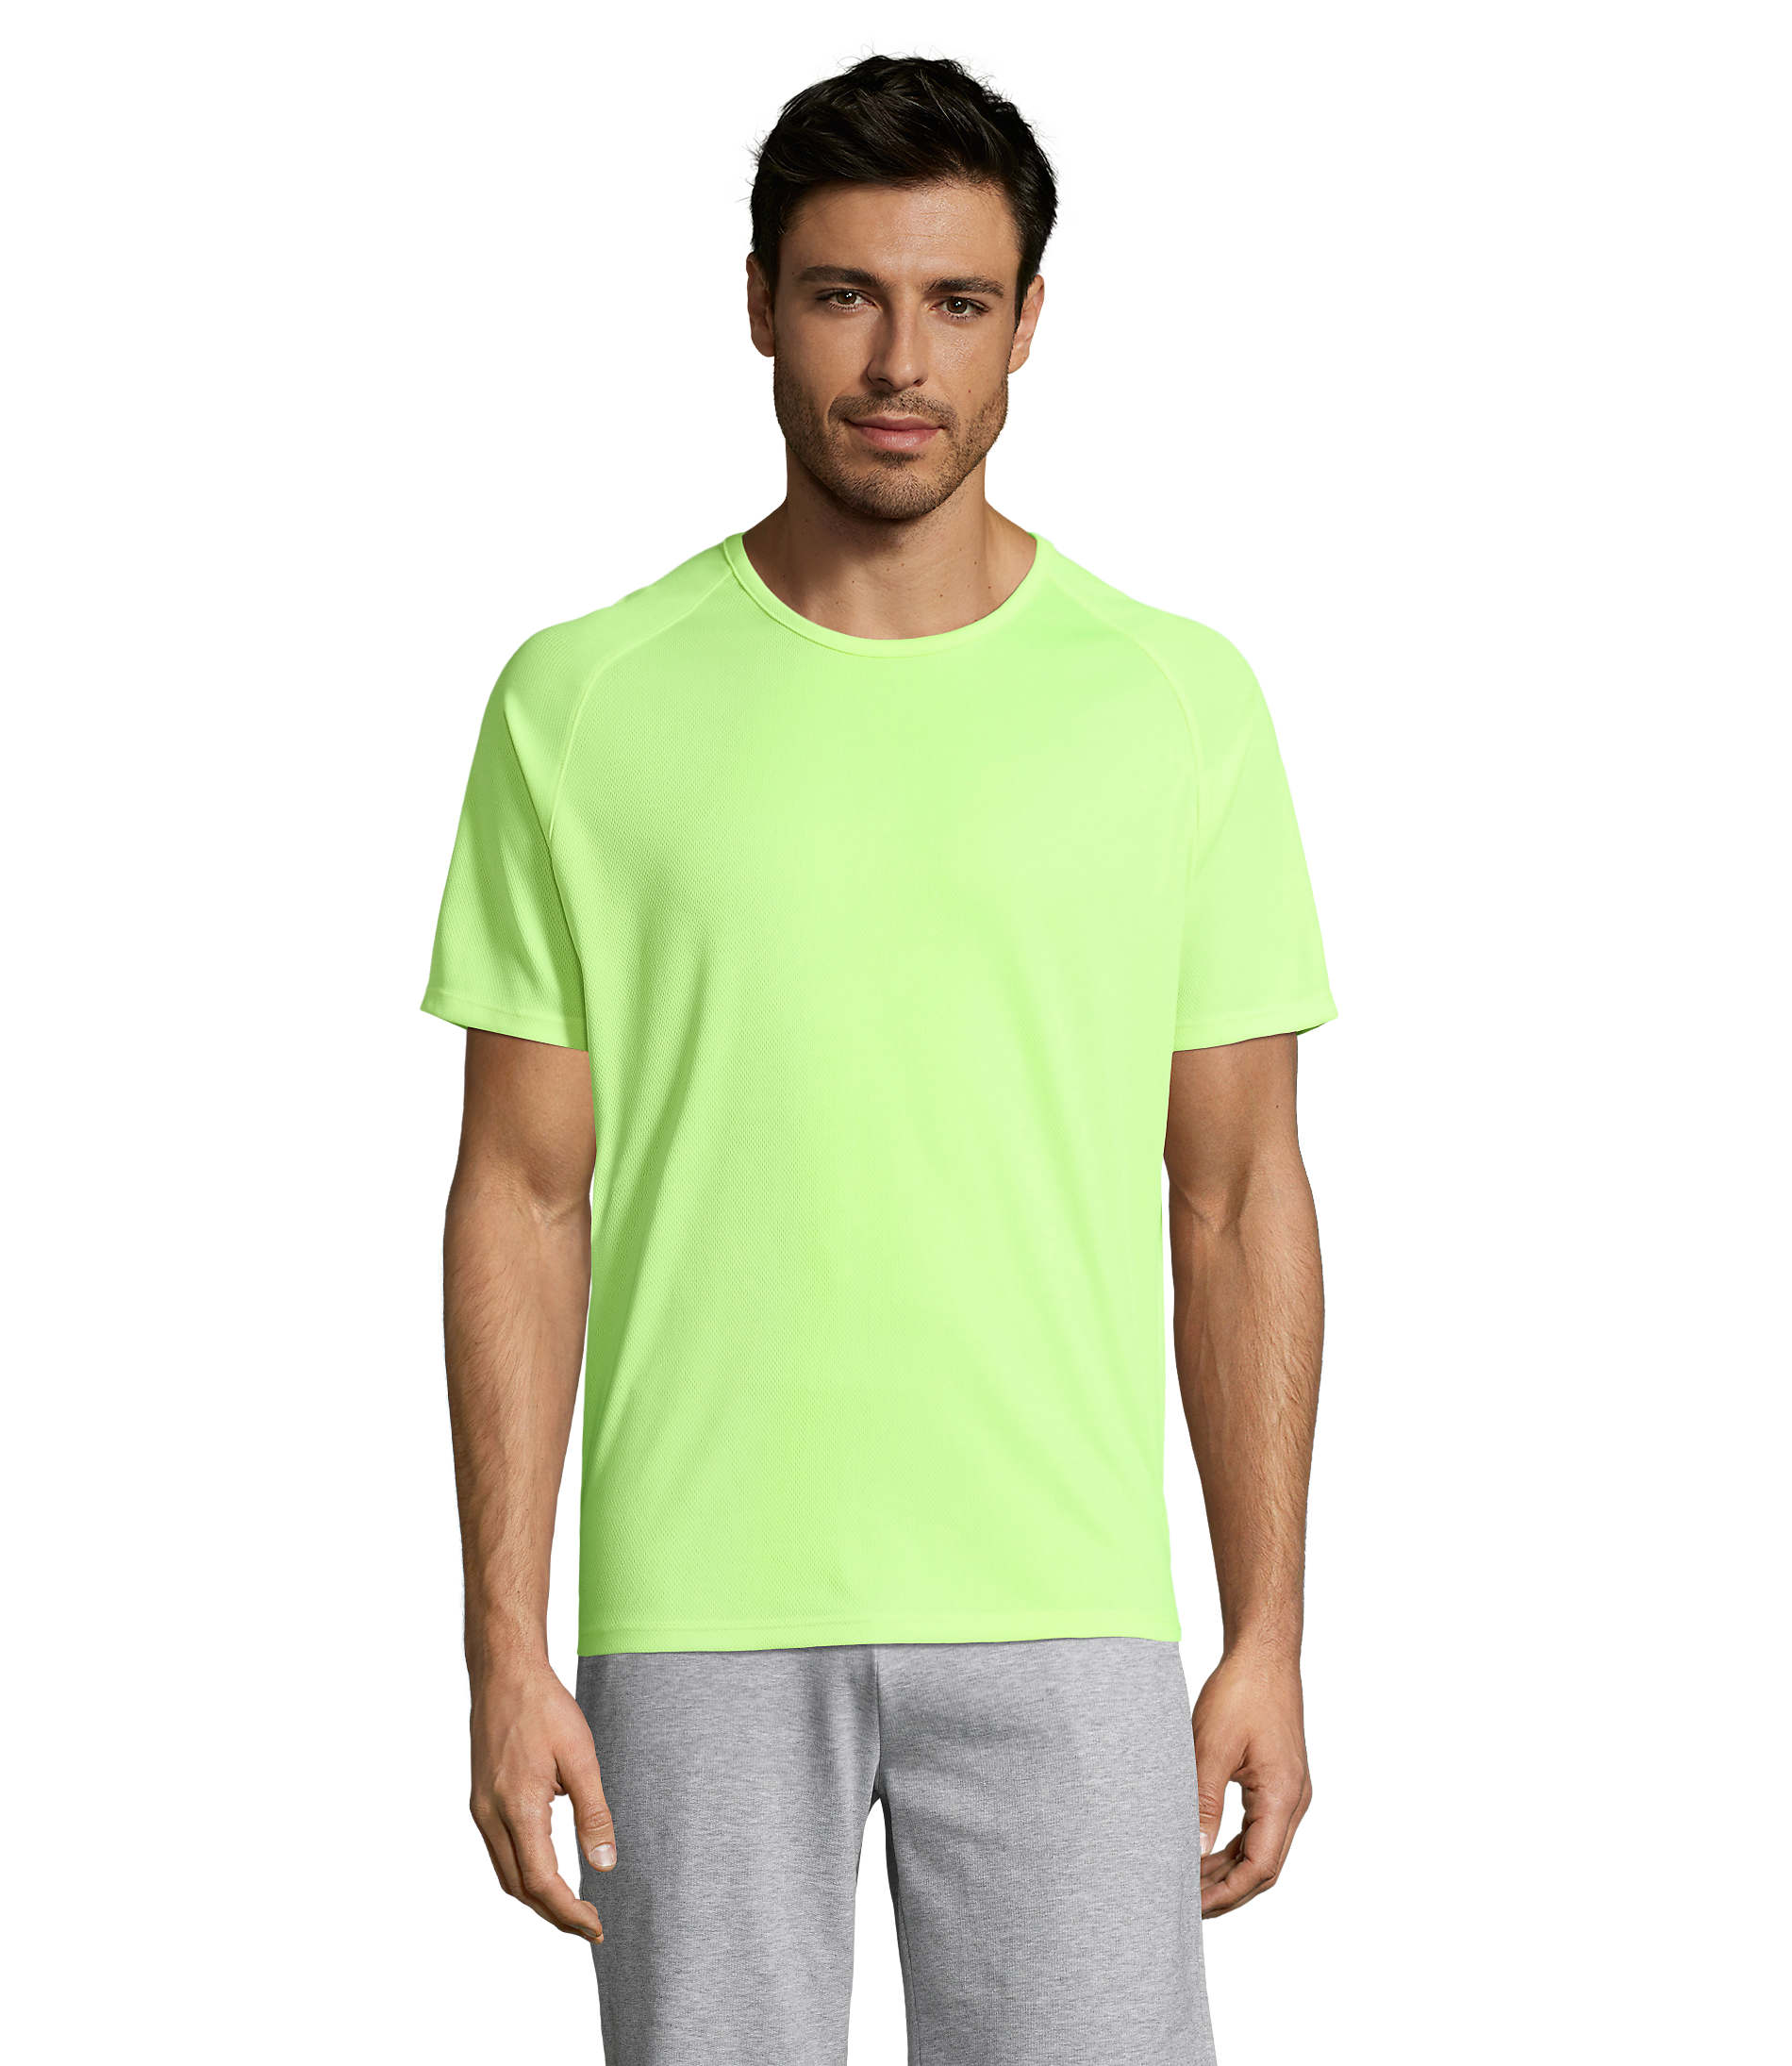 TEE SHIRT SPORT POLYESTER SPORTY